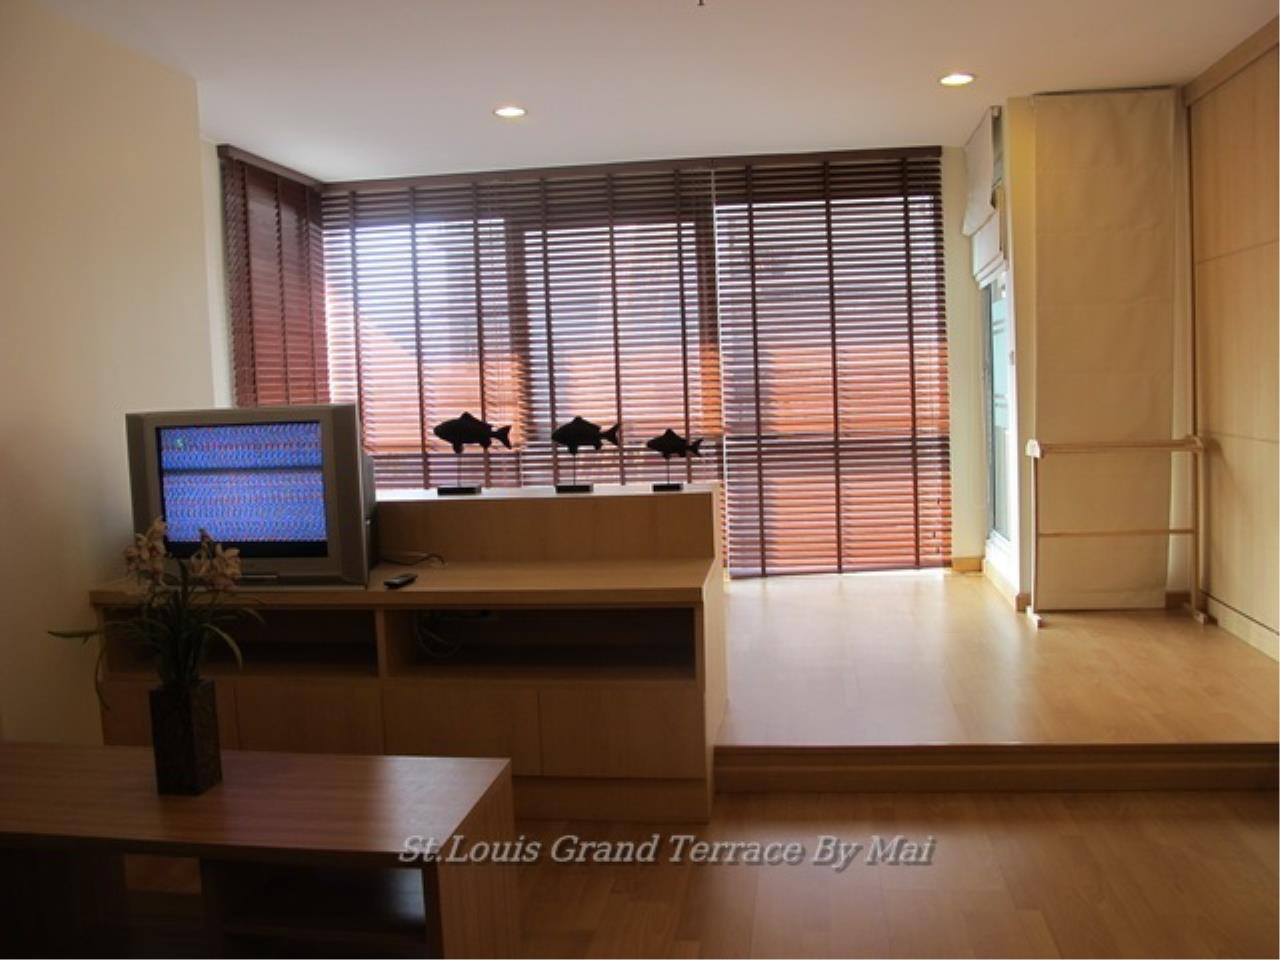 Quality Life Property Agency's For Rent Condo At St. Louis Grand Terrace 1 Bedroom 1 | 17 Floor 18, 000 THB / MONTH 1